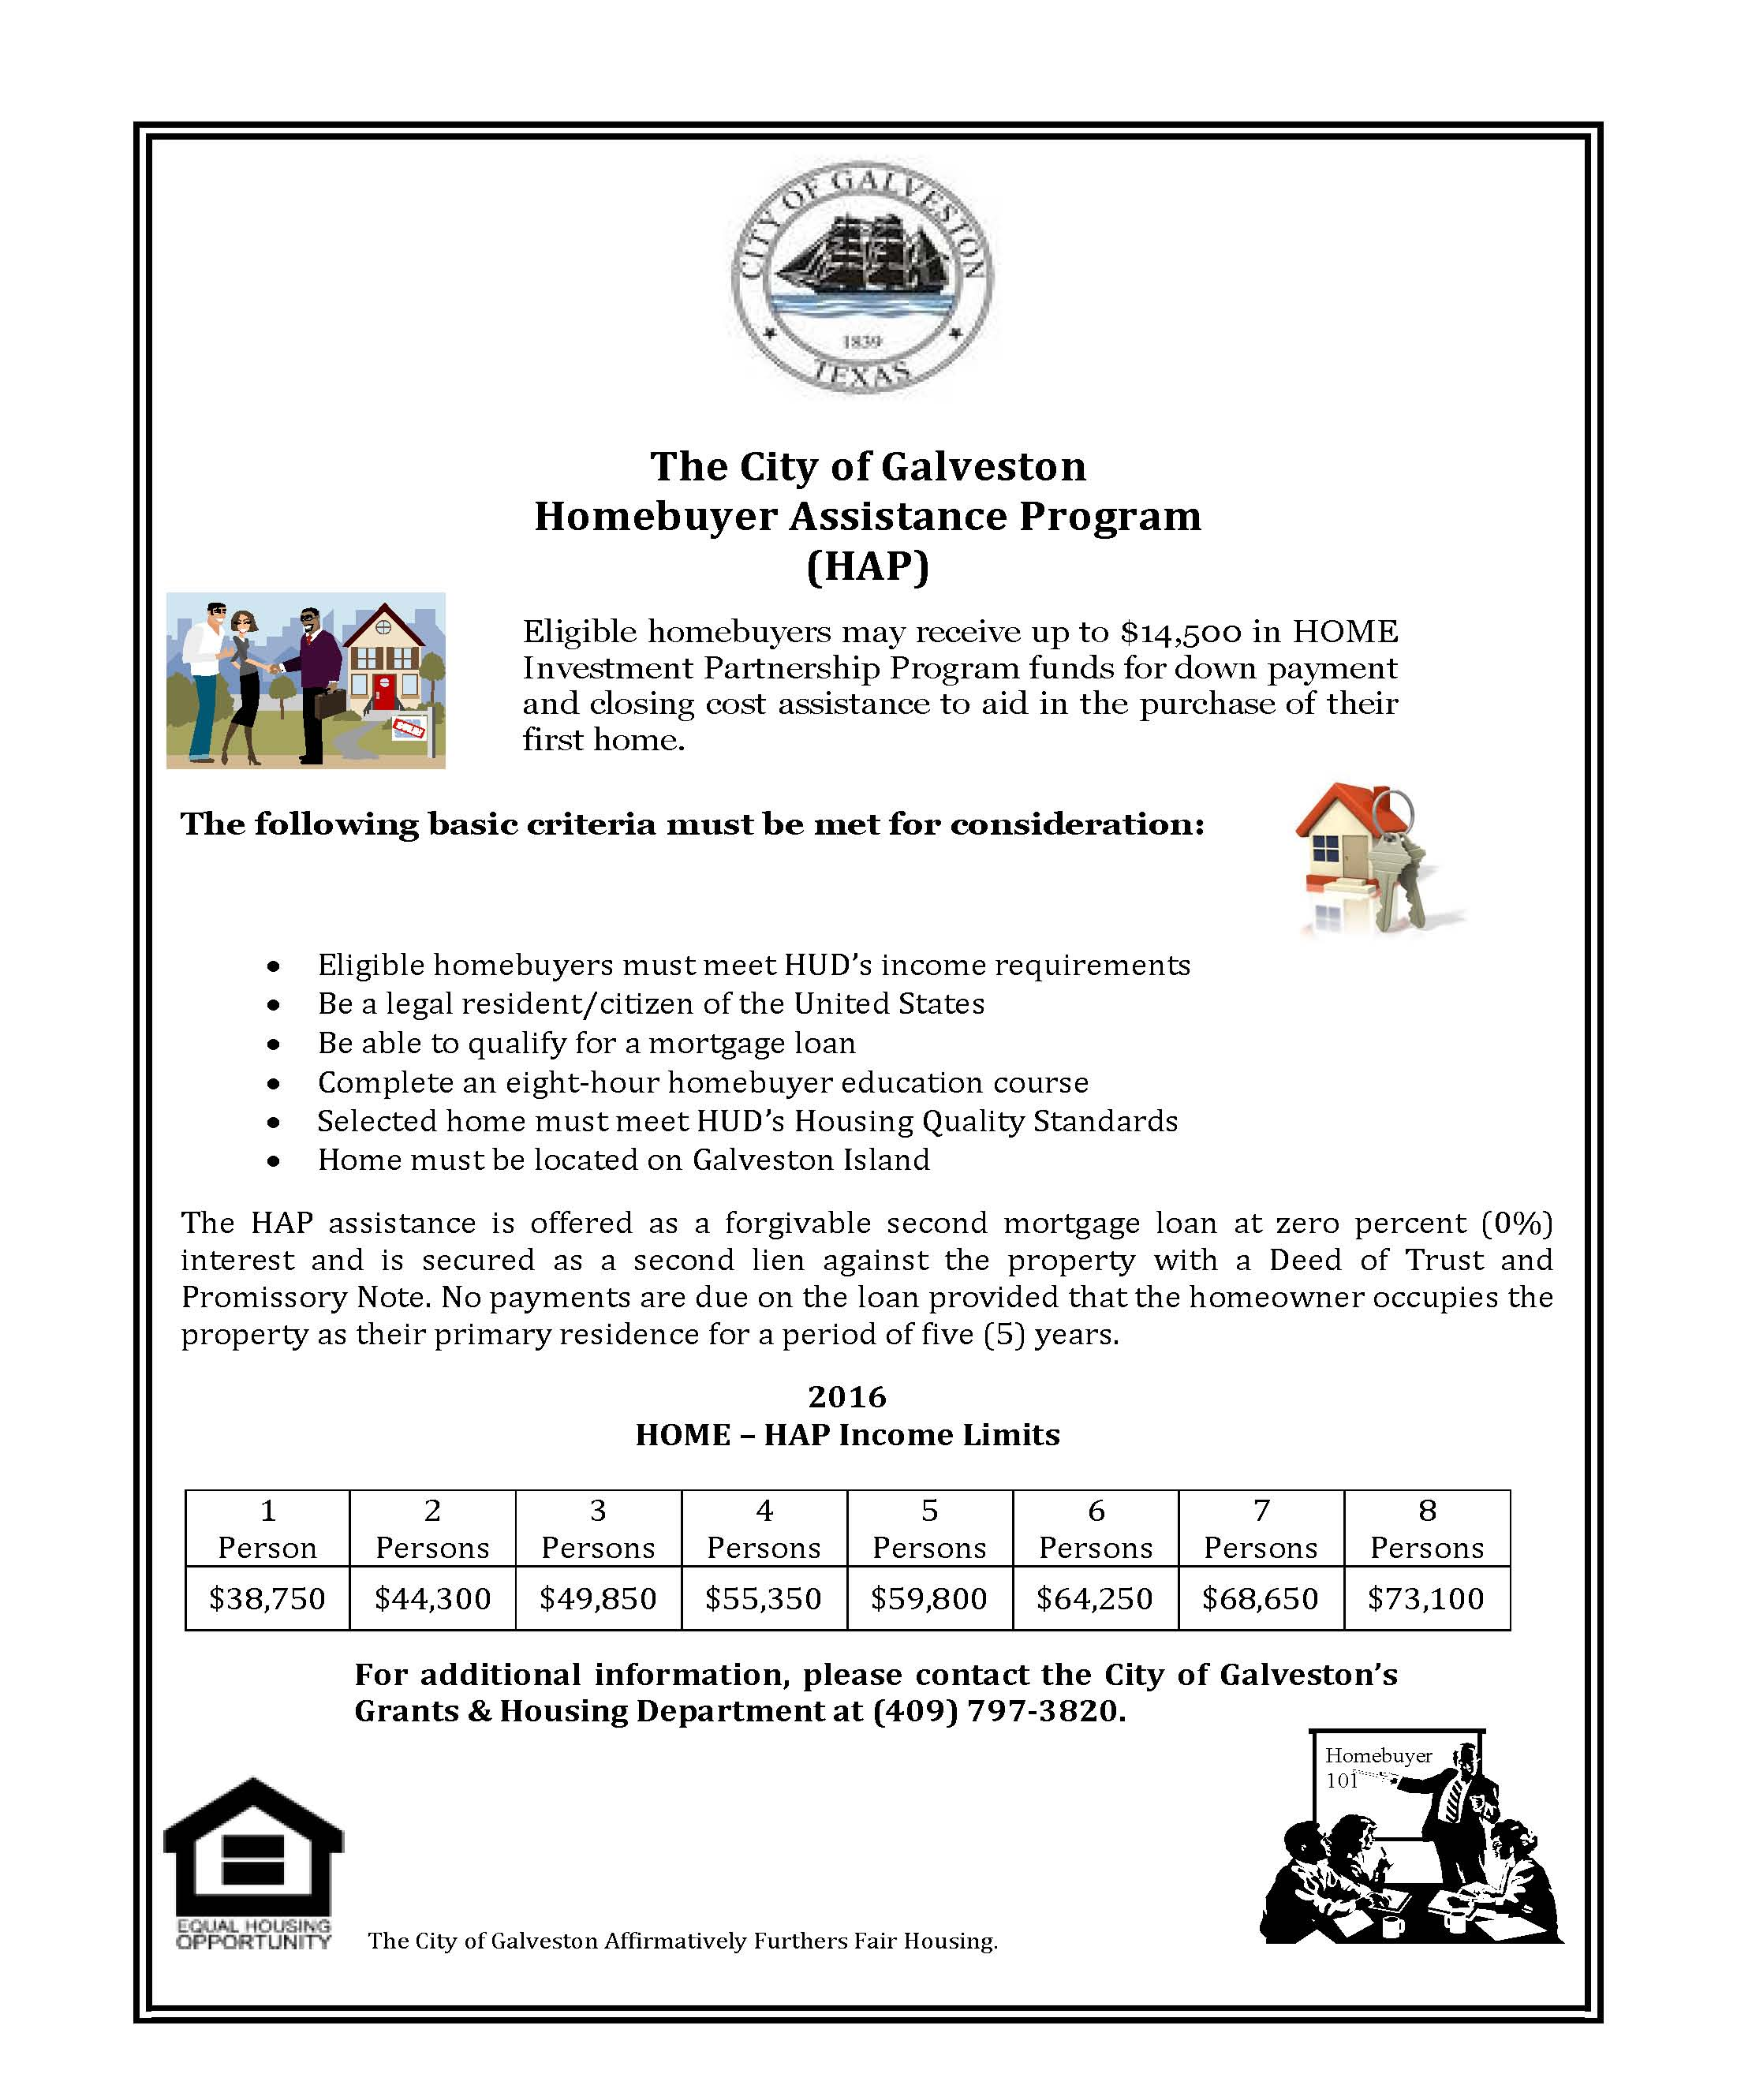 Home er Assistance Program